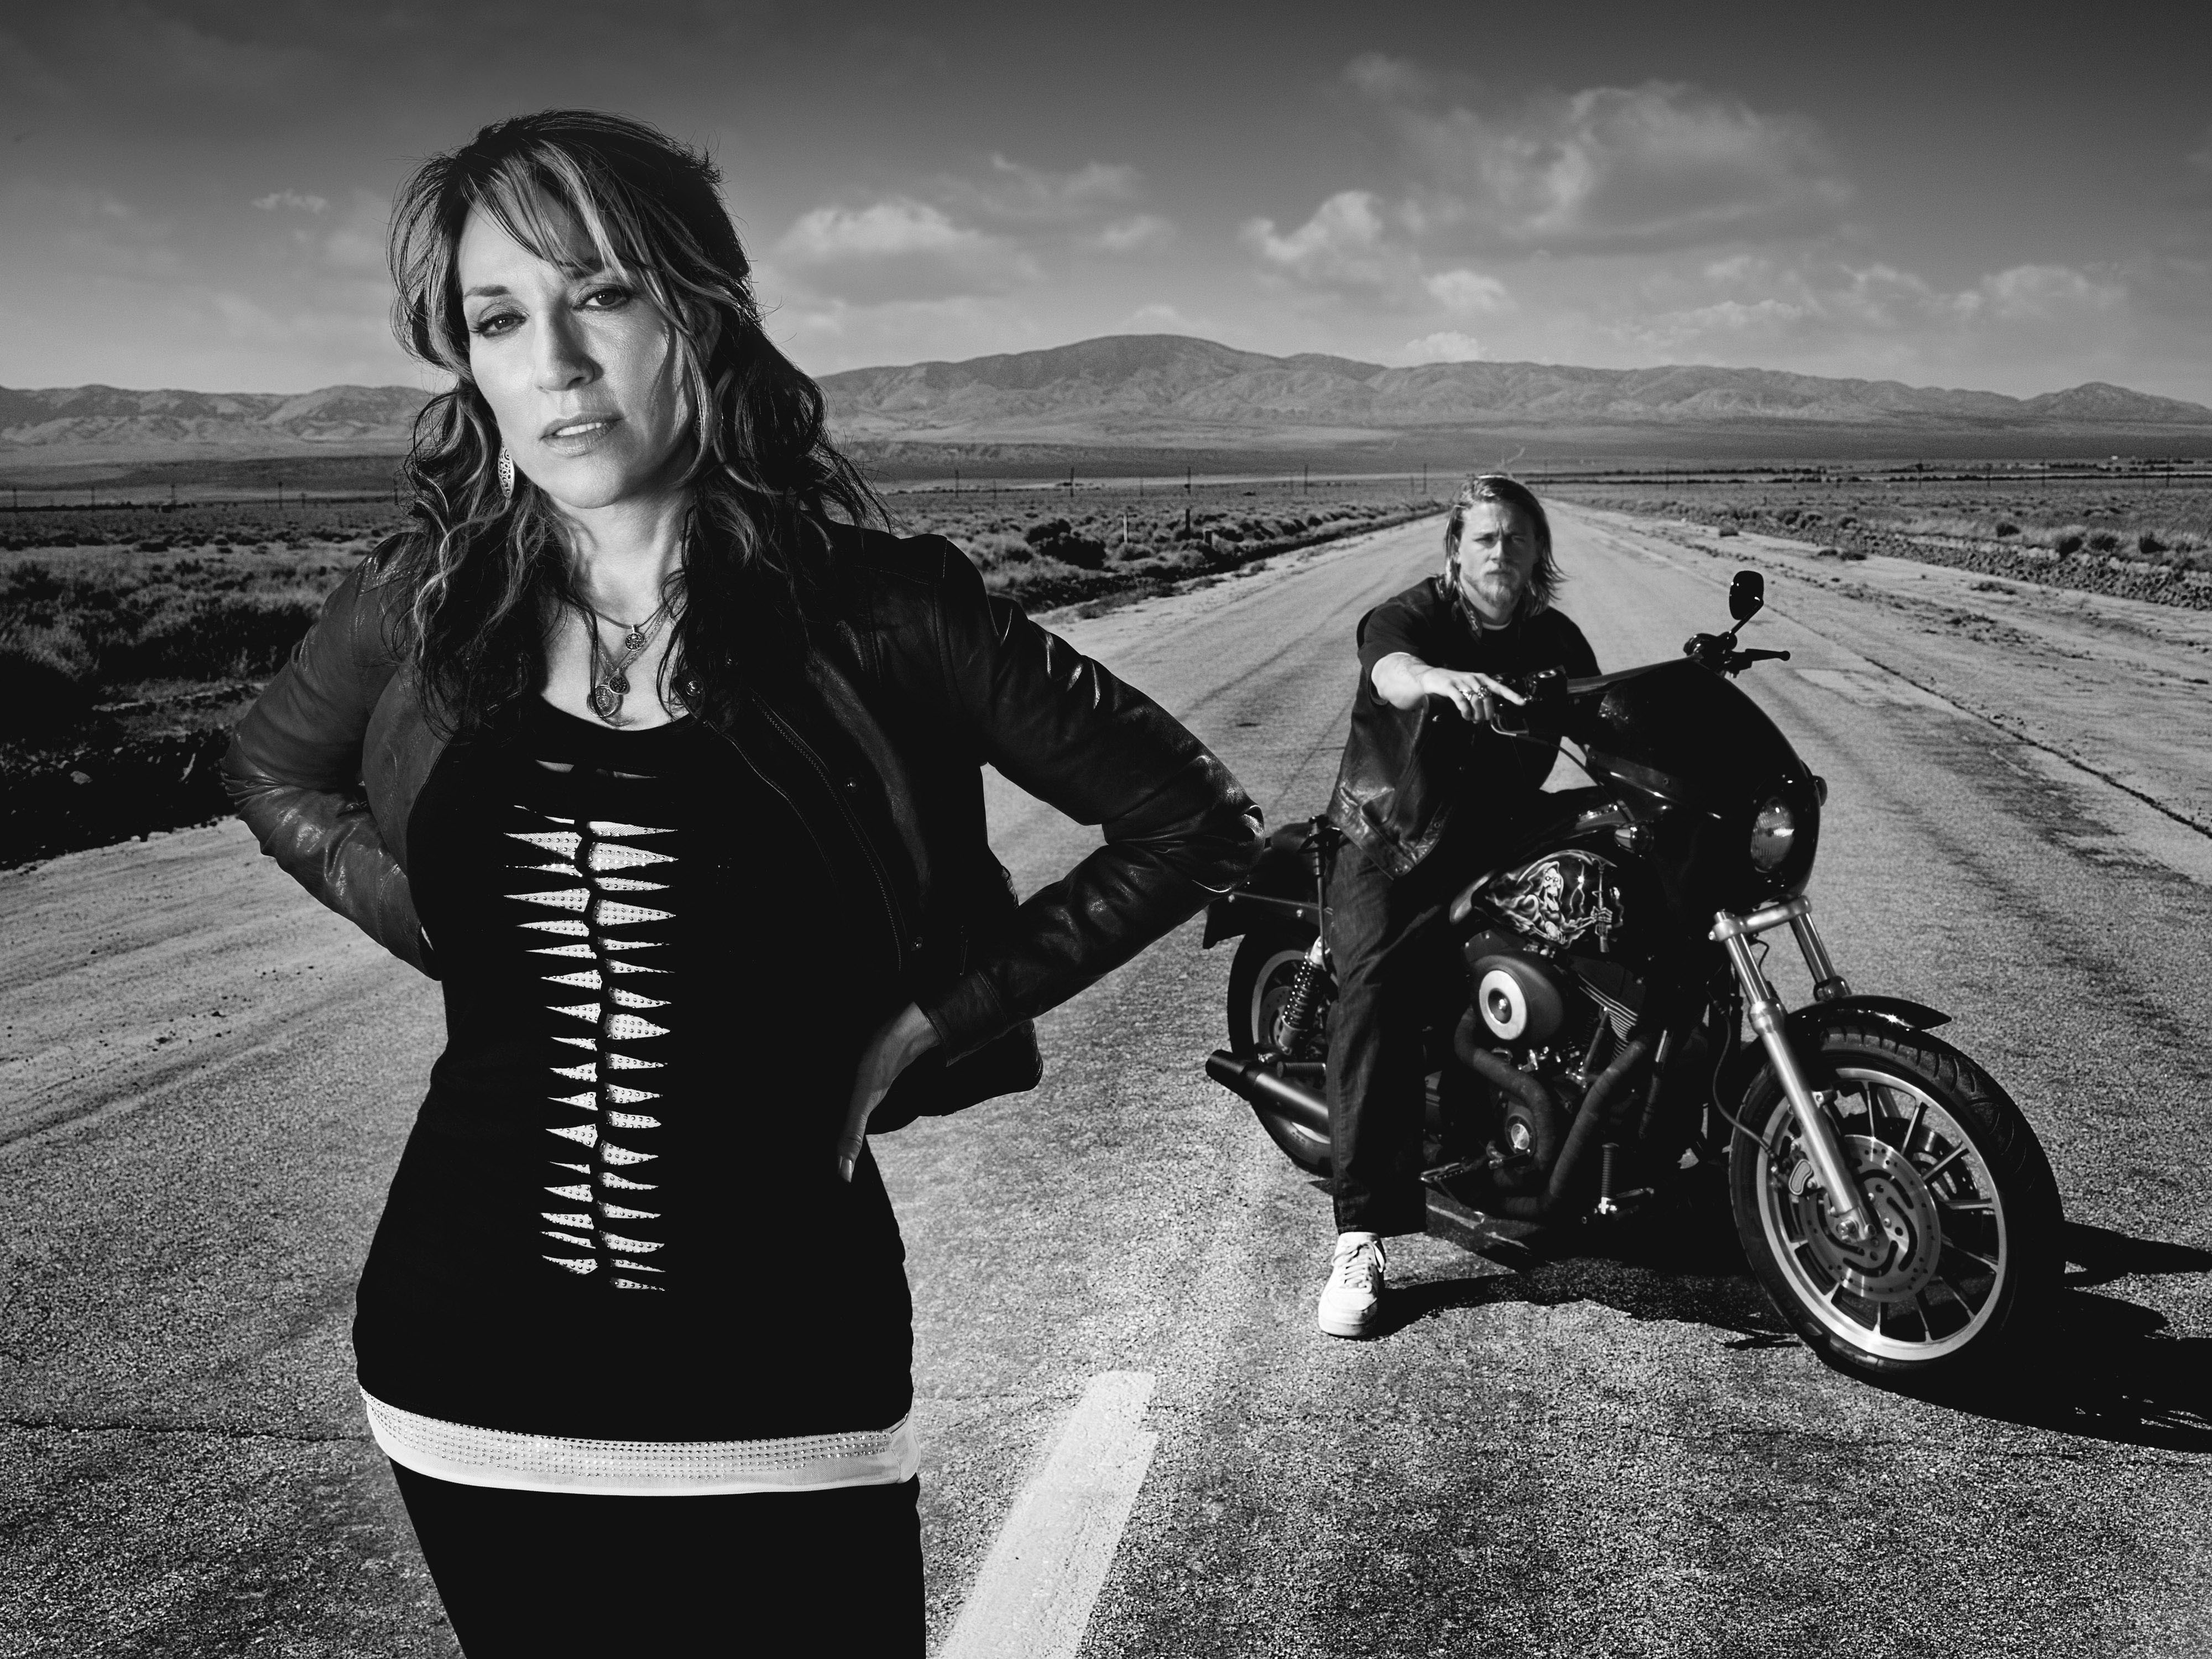 sons of anarchy monochrome